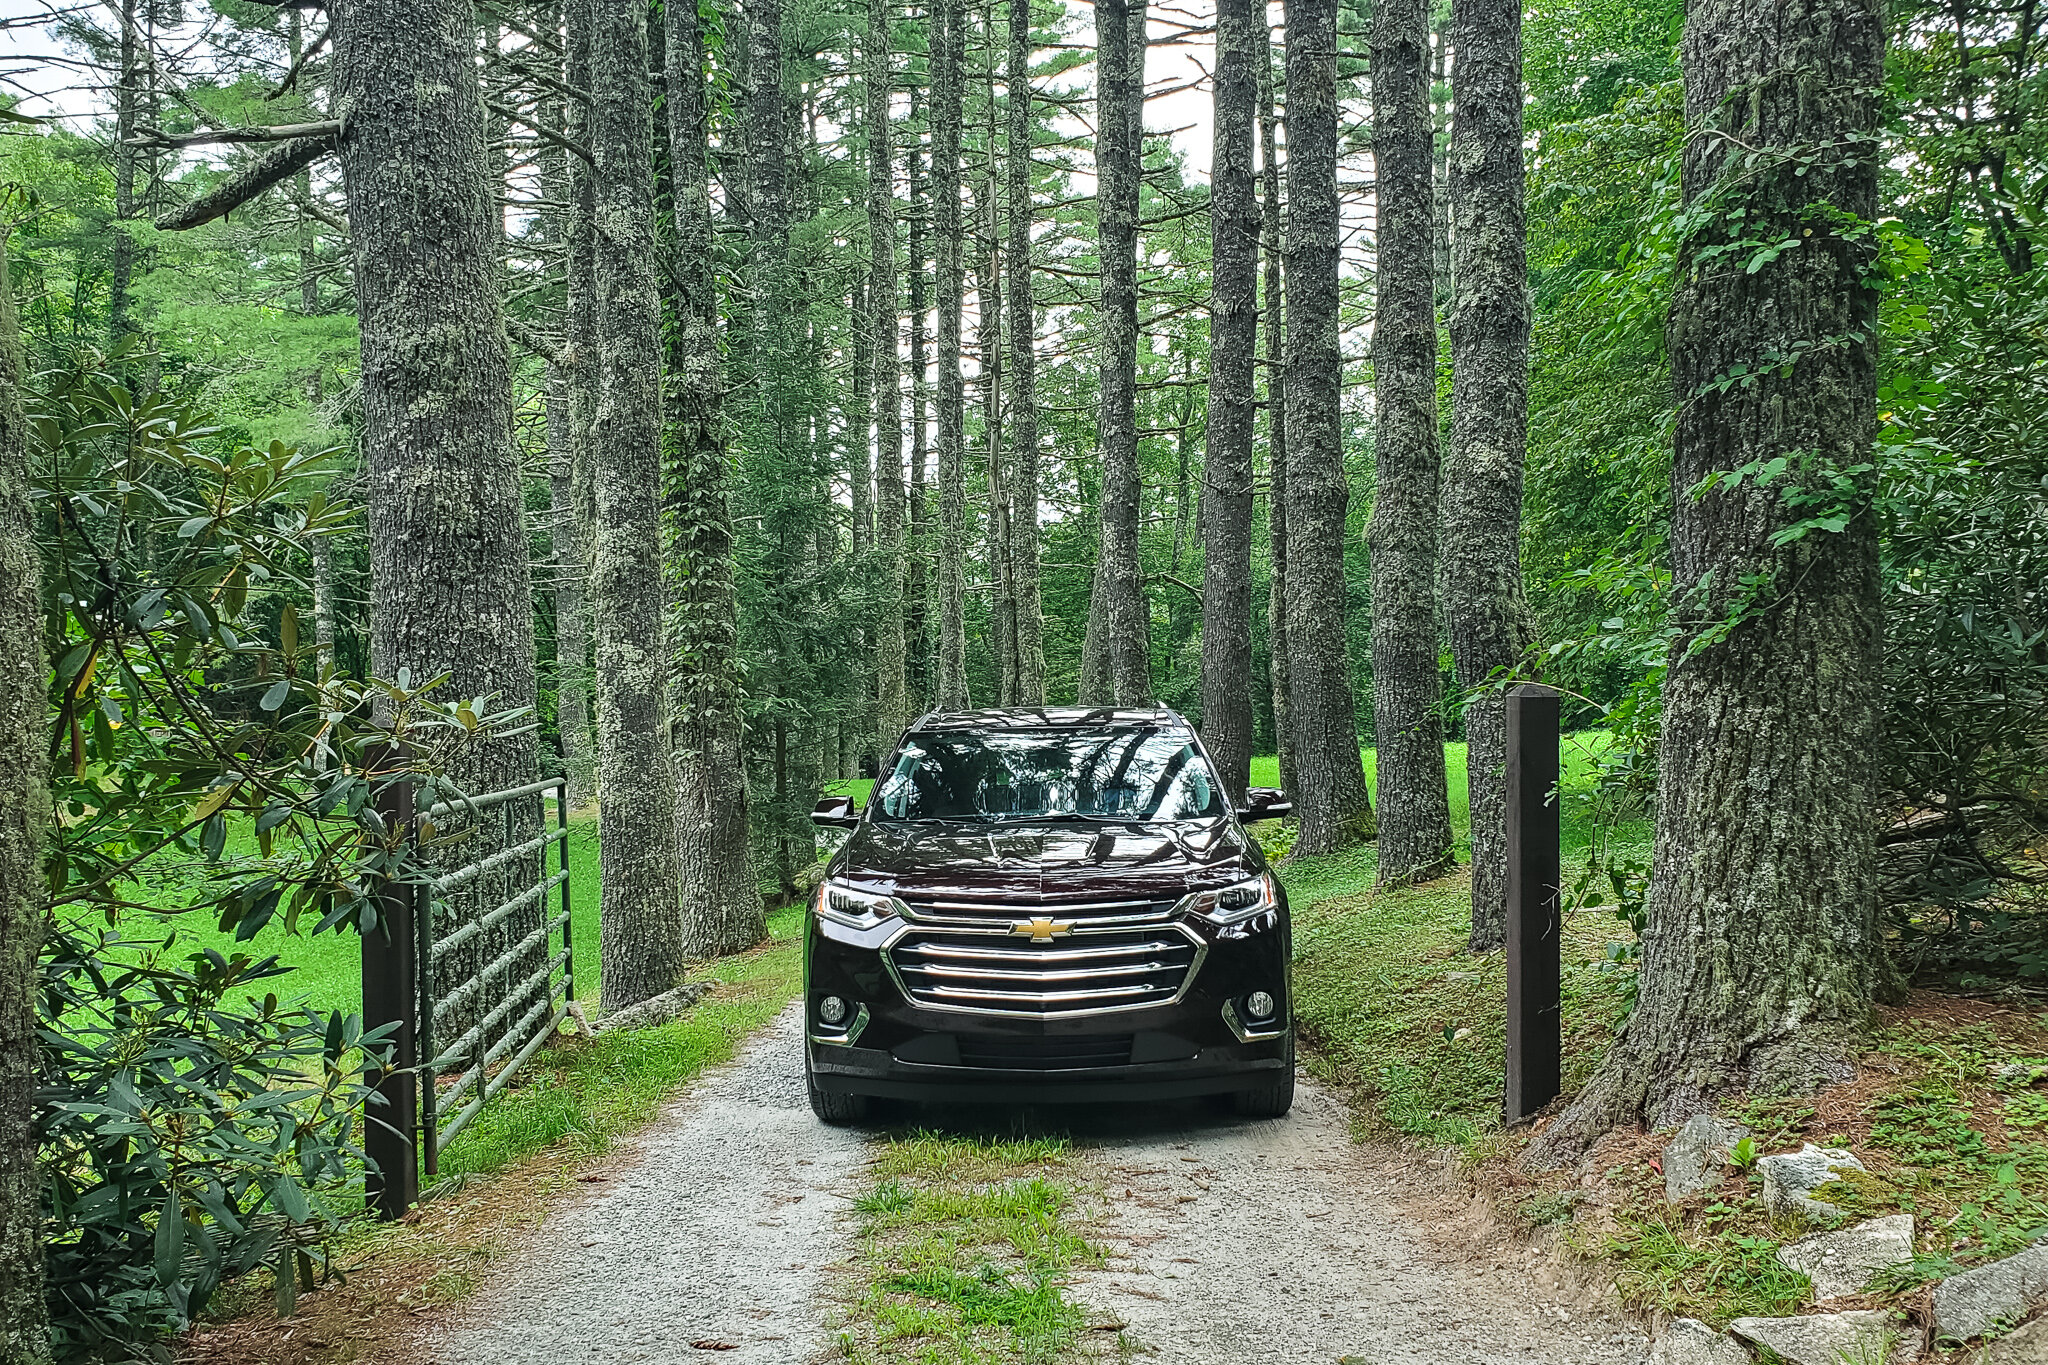 2019 Chevy Traverse on a road trip to Cashiers and Highlands, North Carolina (c) Anna Lanfreschi